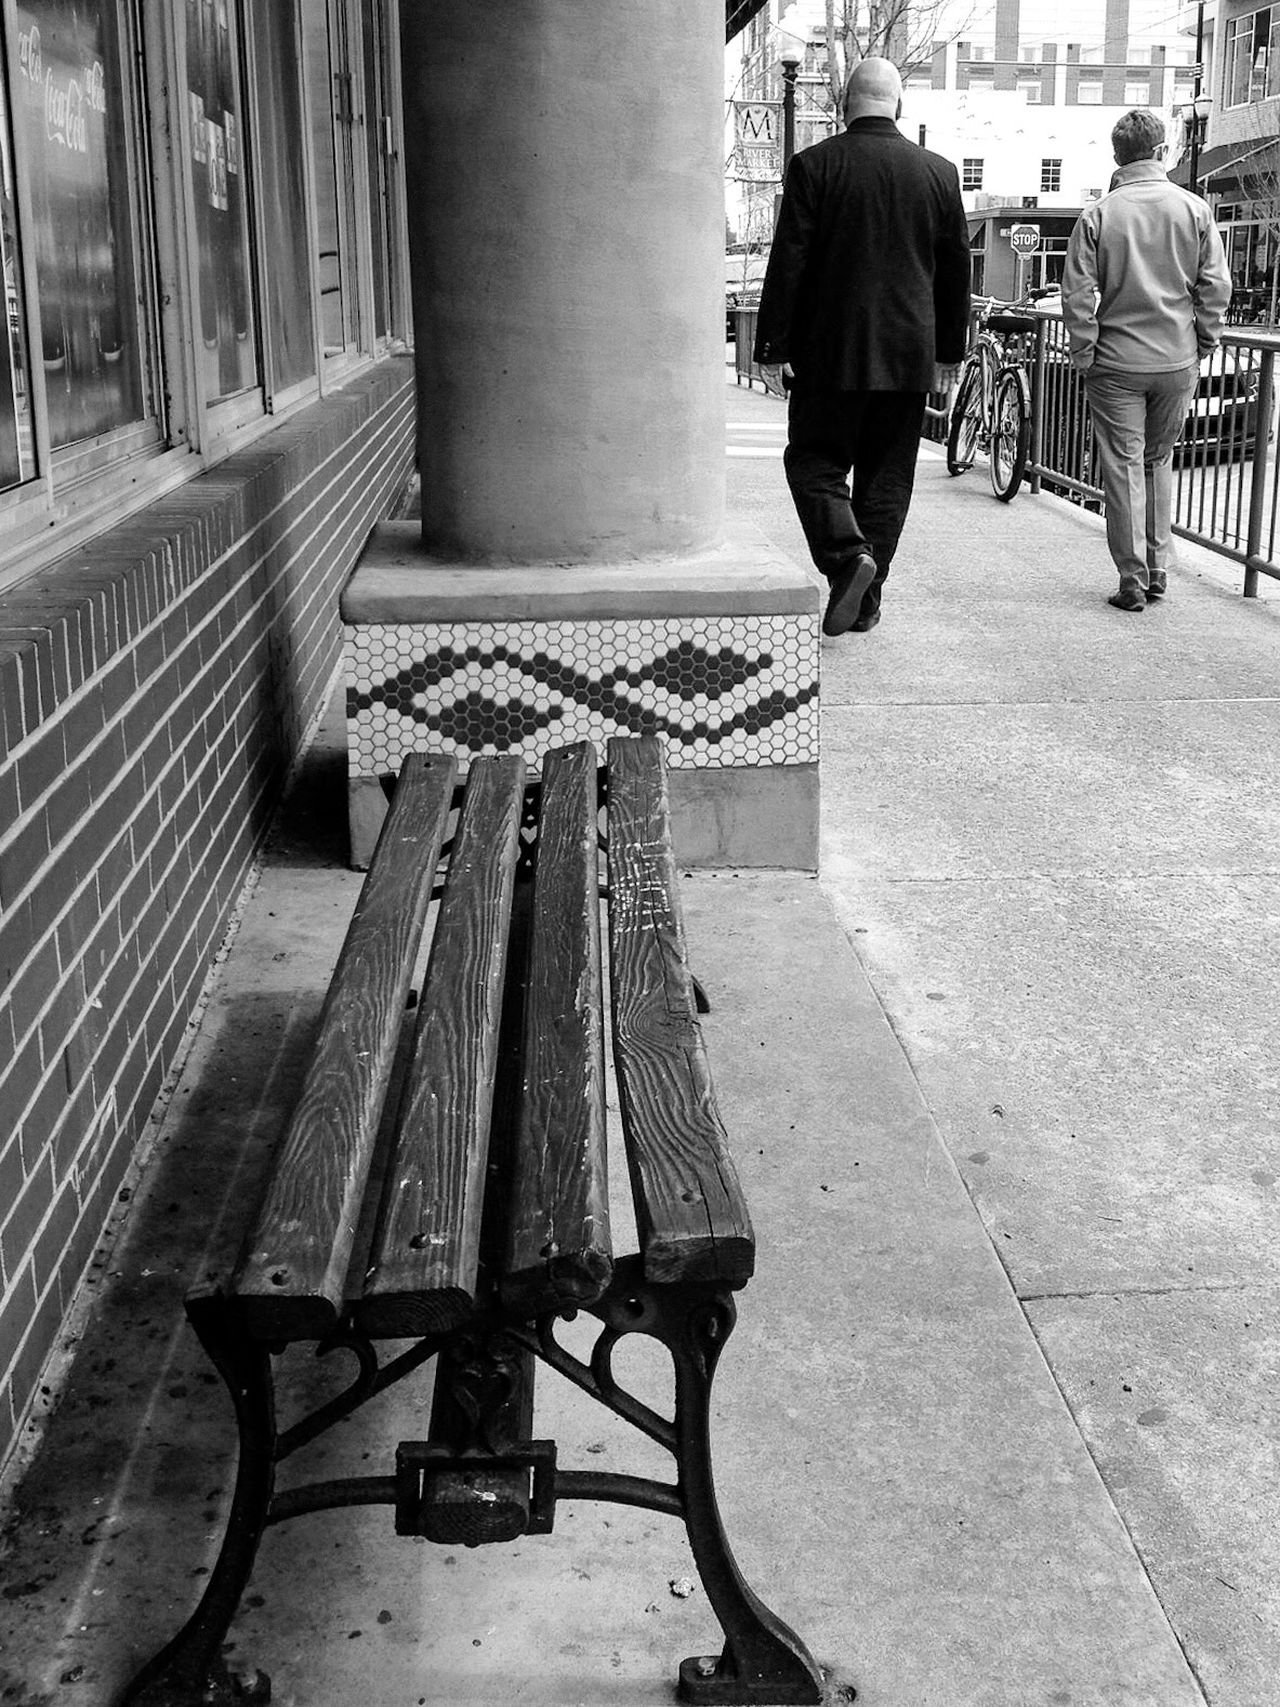 Not Park Bench Thursday Blackandwhite Black & White Streetphotography Streetphoto_bw Bench